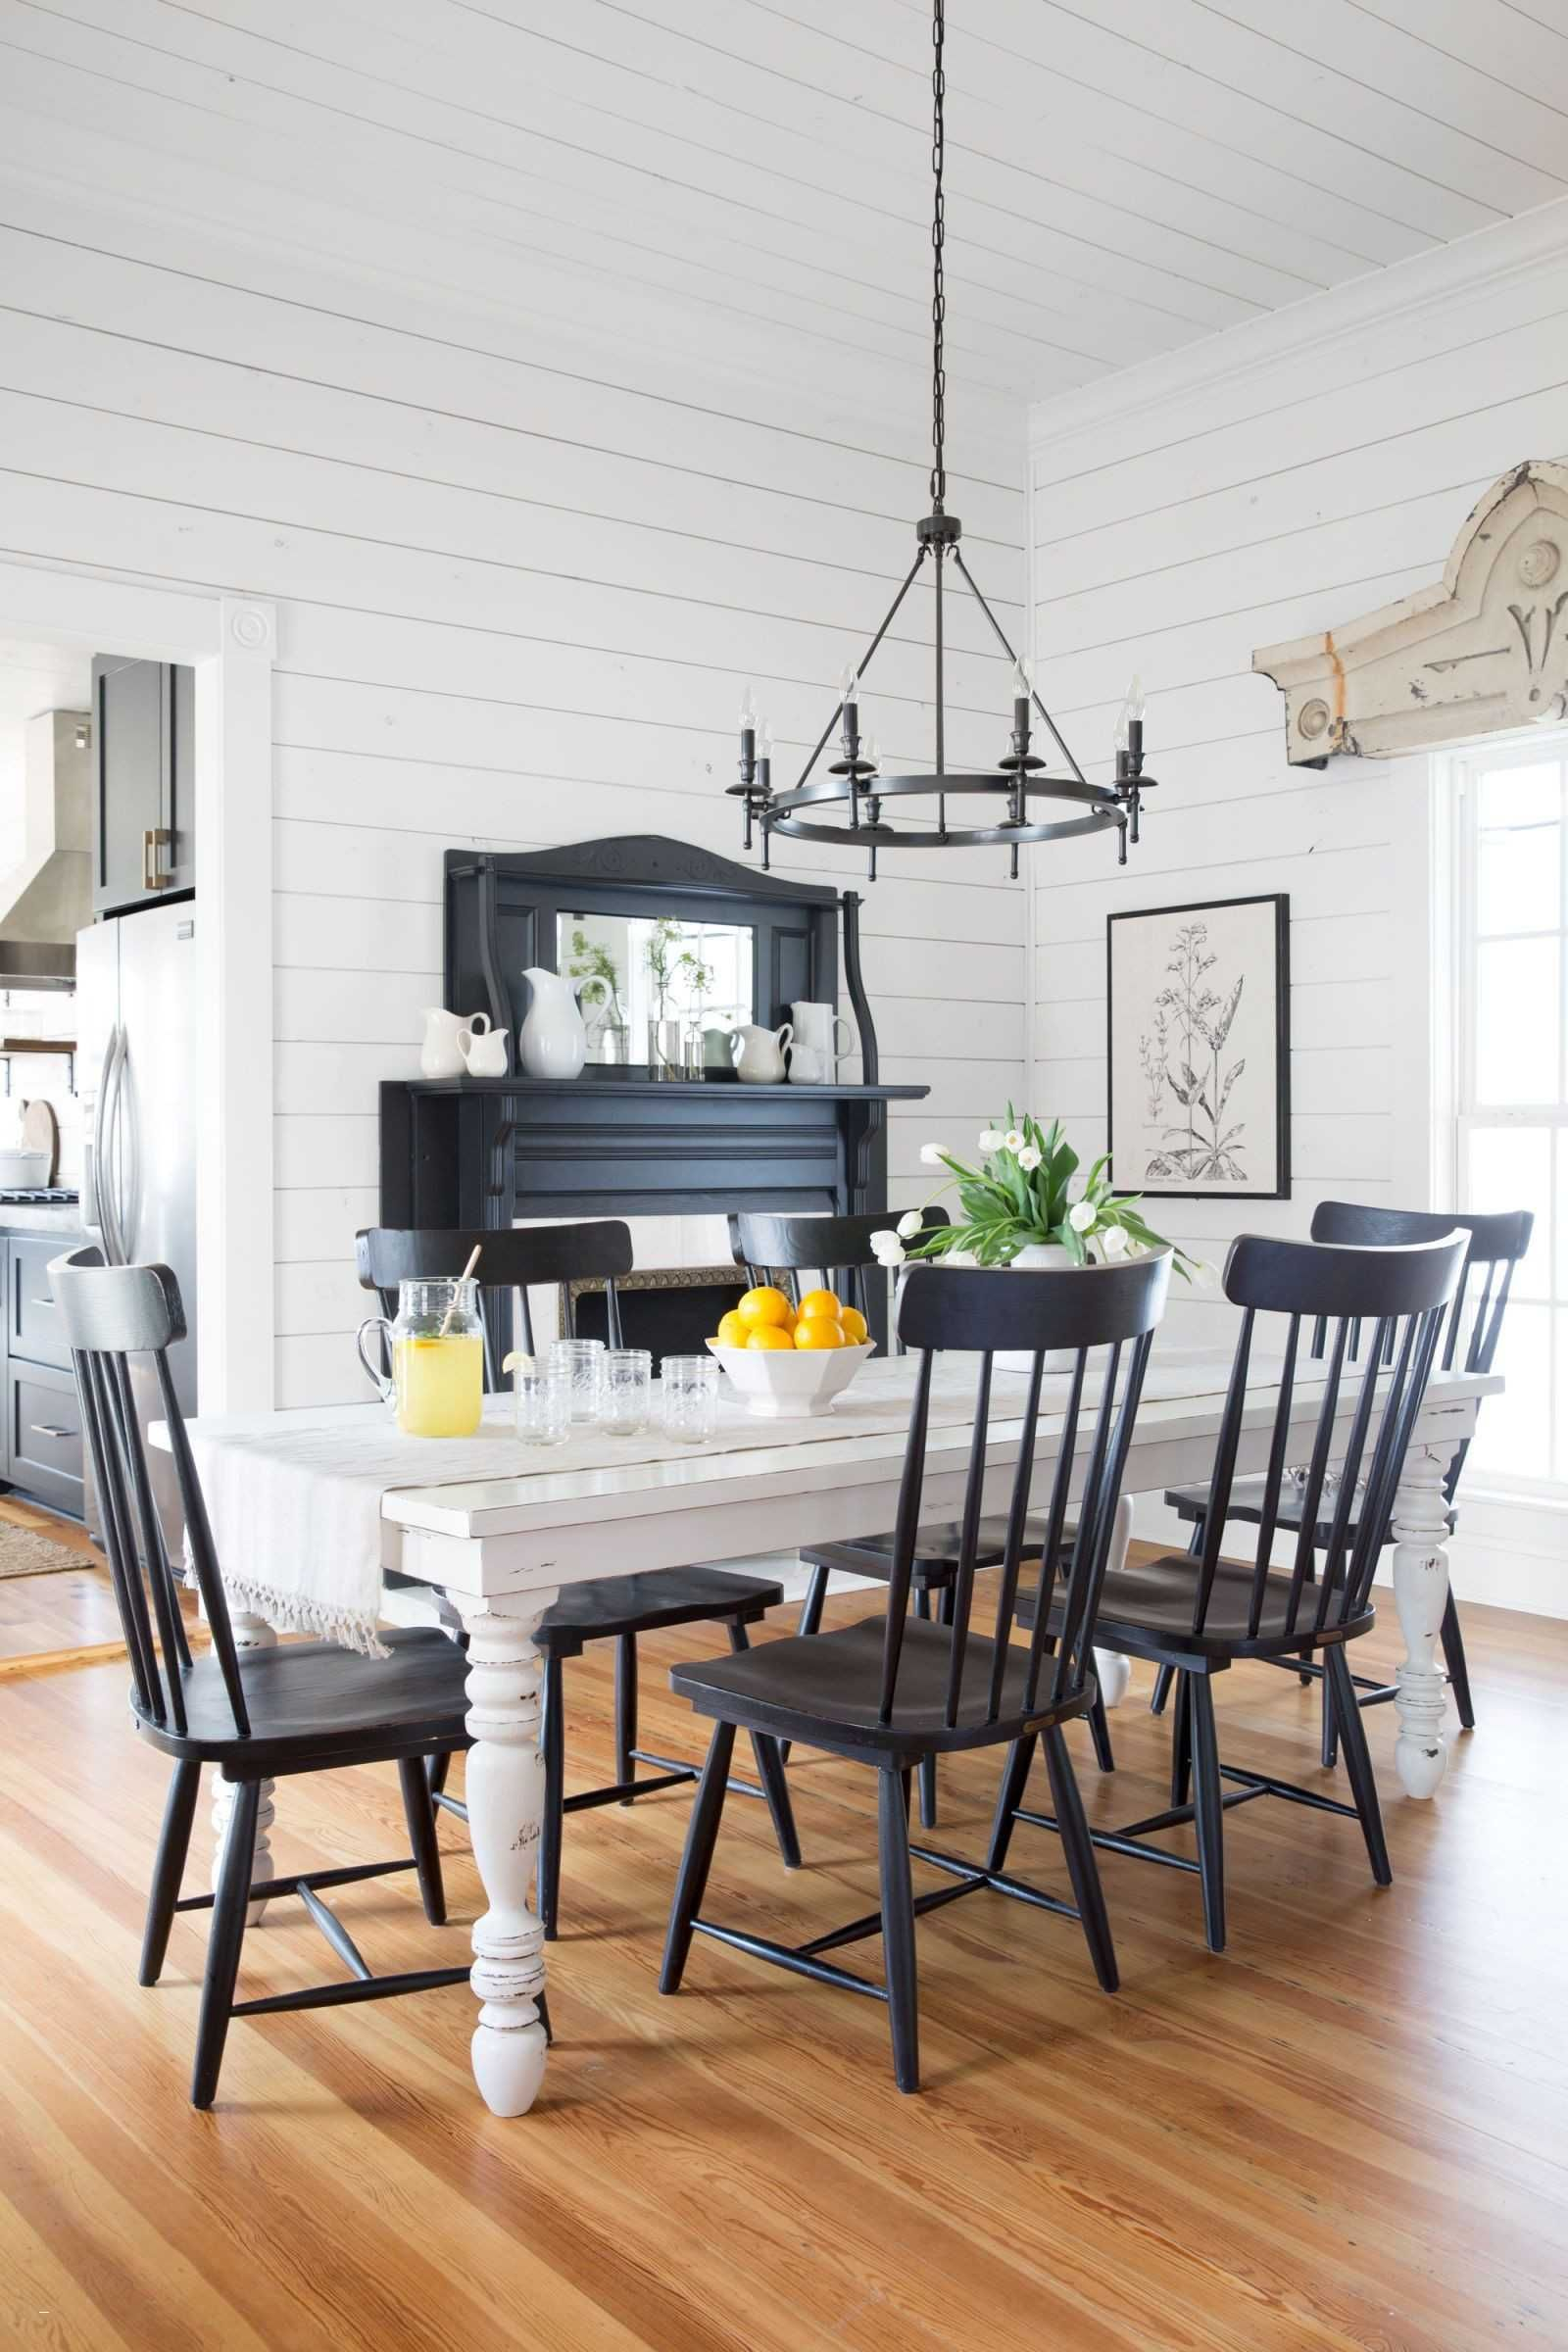 Joanna Gaines Rustic Farmhouse Bathroom Fresh White Dining Room Sets For Sale Unique Take A Tour Chip And